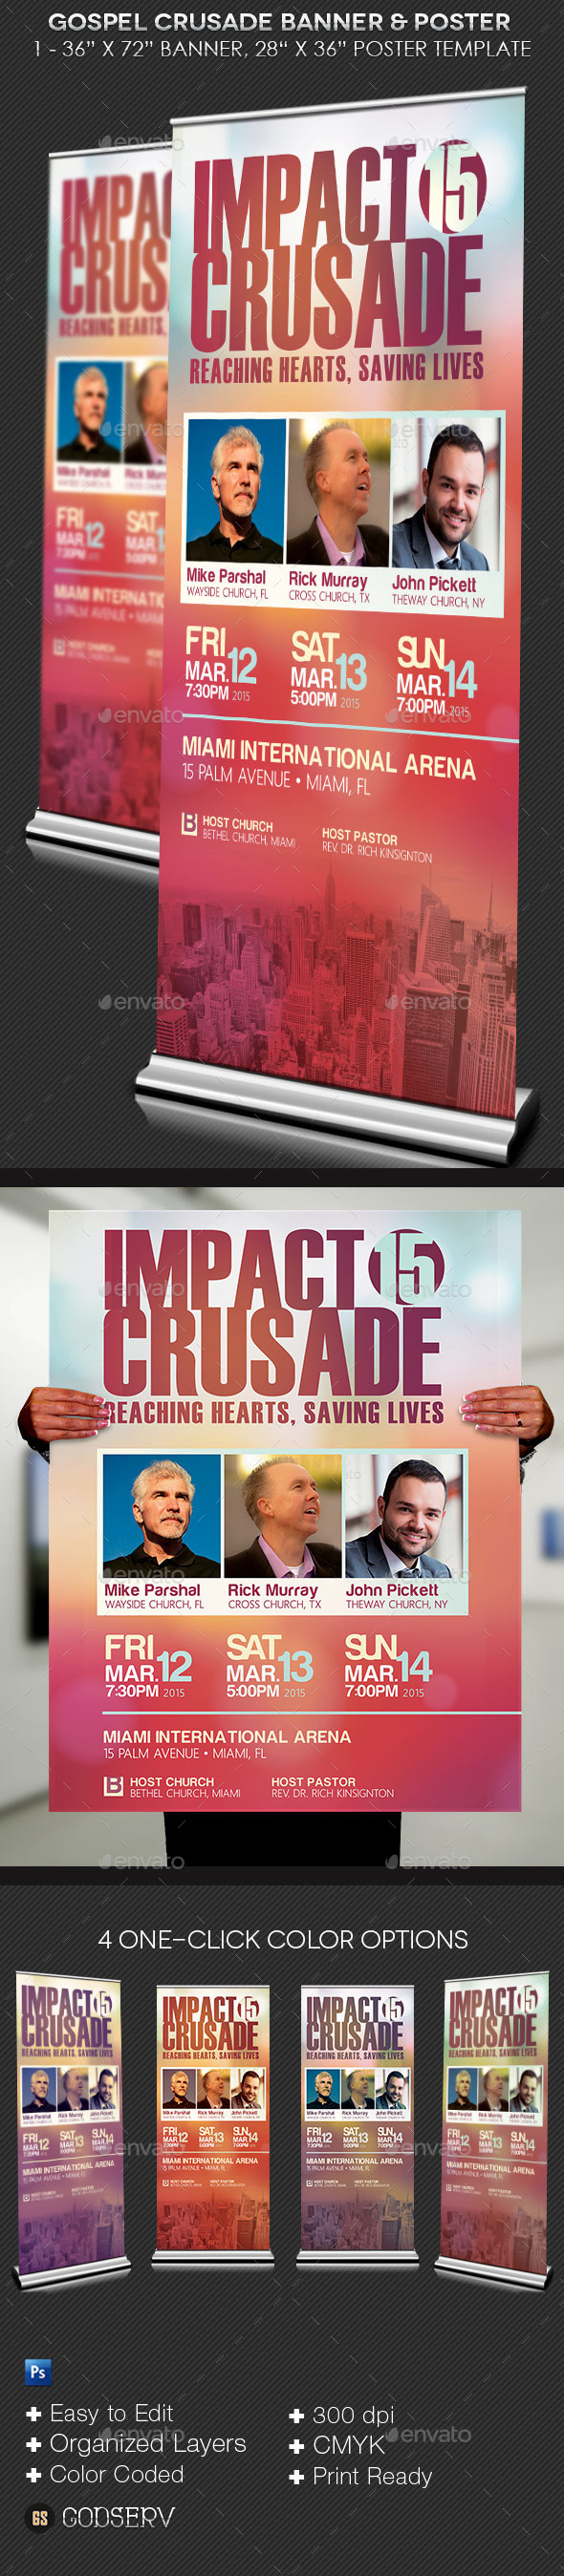 GraphicRiver Gospel Crusade Banner and Poster Template 10472374